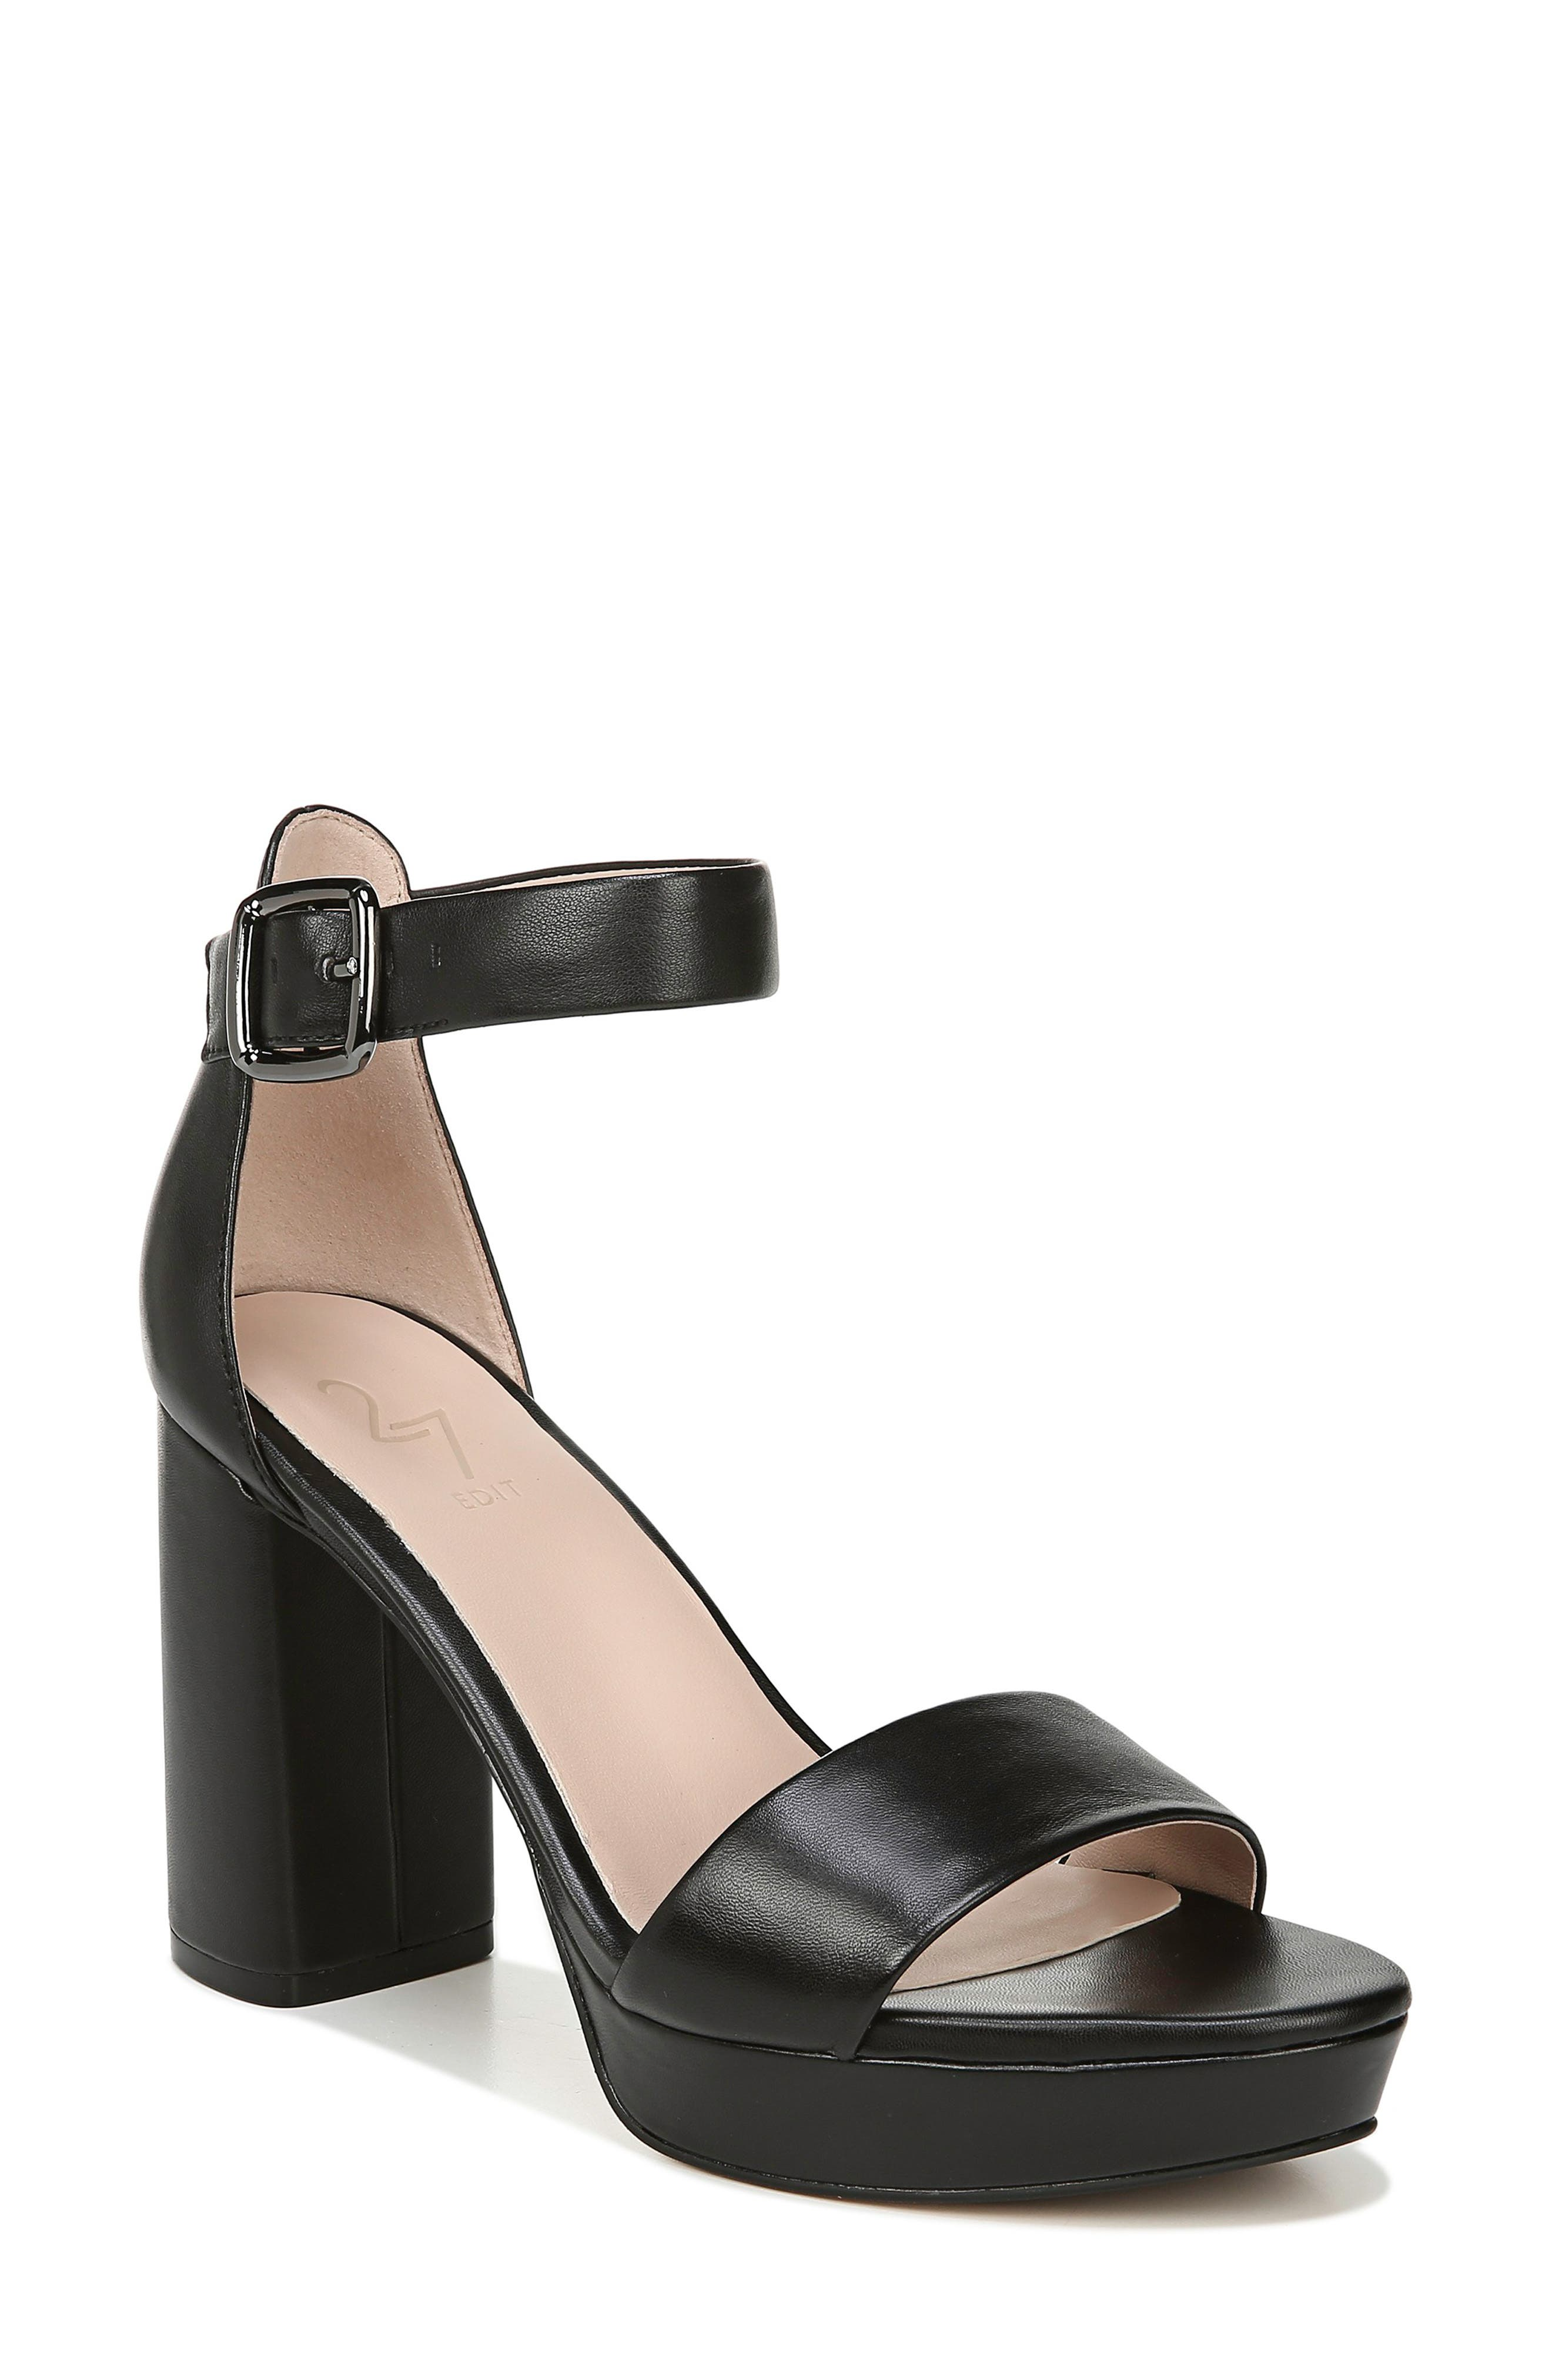 All Women's Sale Wide Shoes | Nordstrom